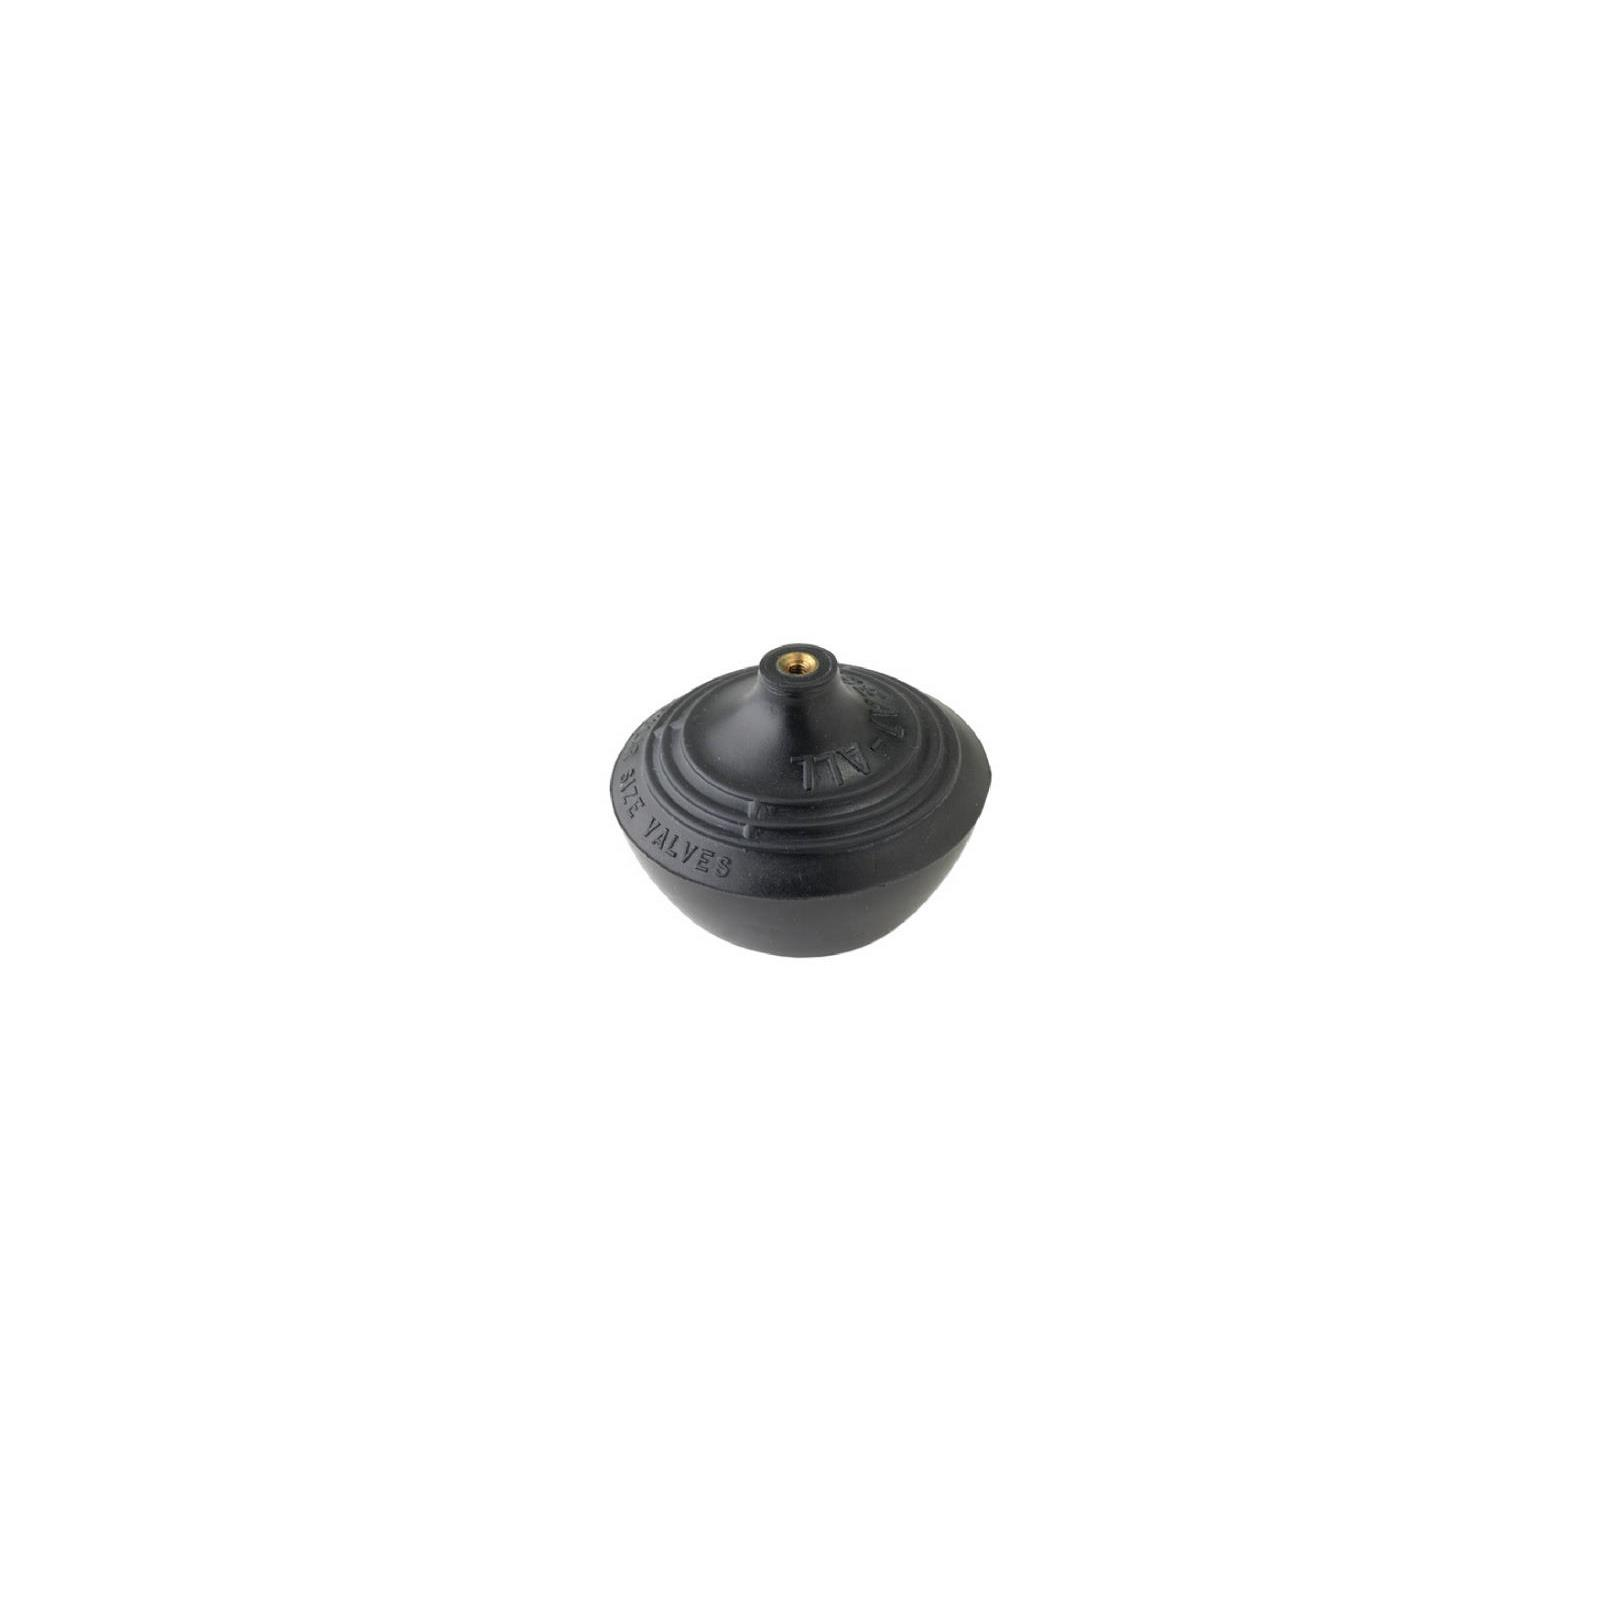 Plumb-Shop-Div-Brasscraft-585-414-Rubber-Toilet-Tank-Ball